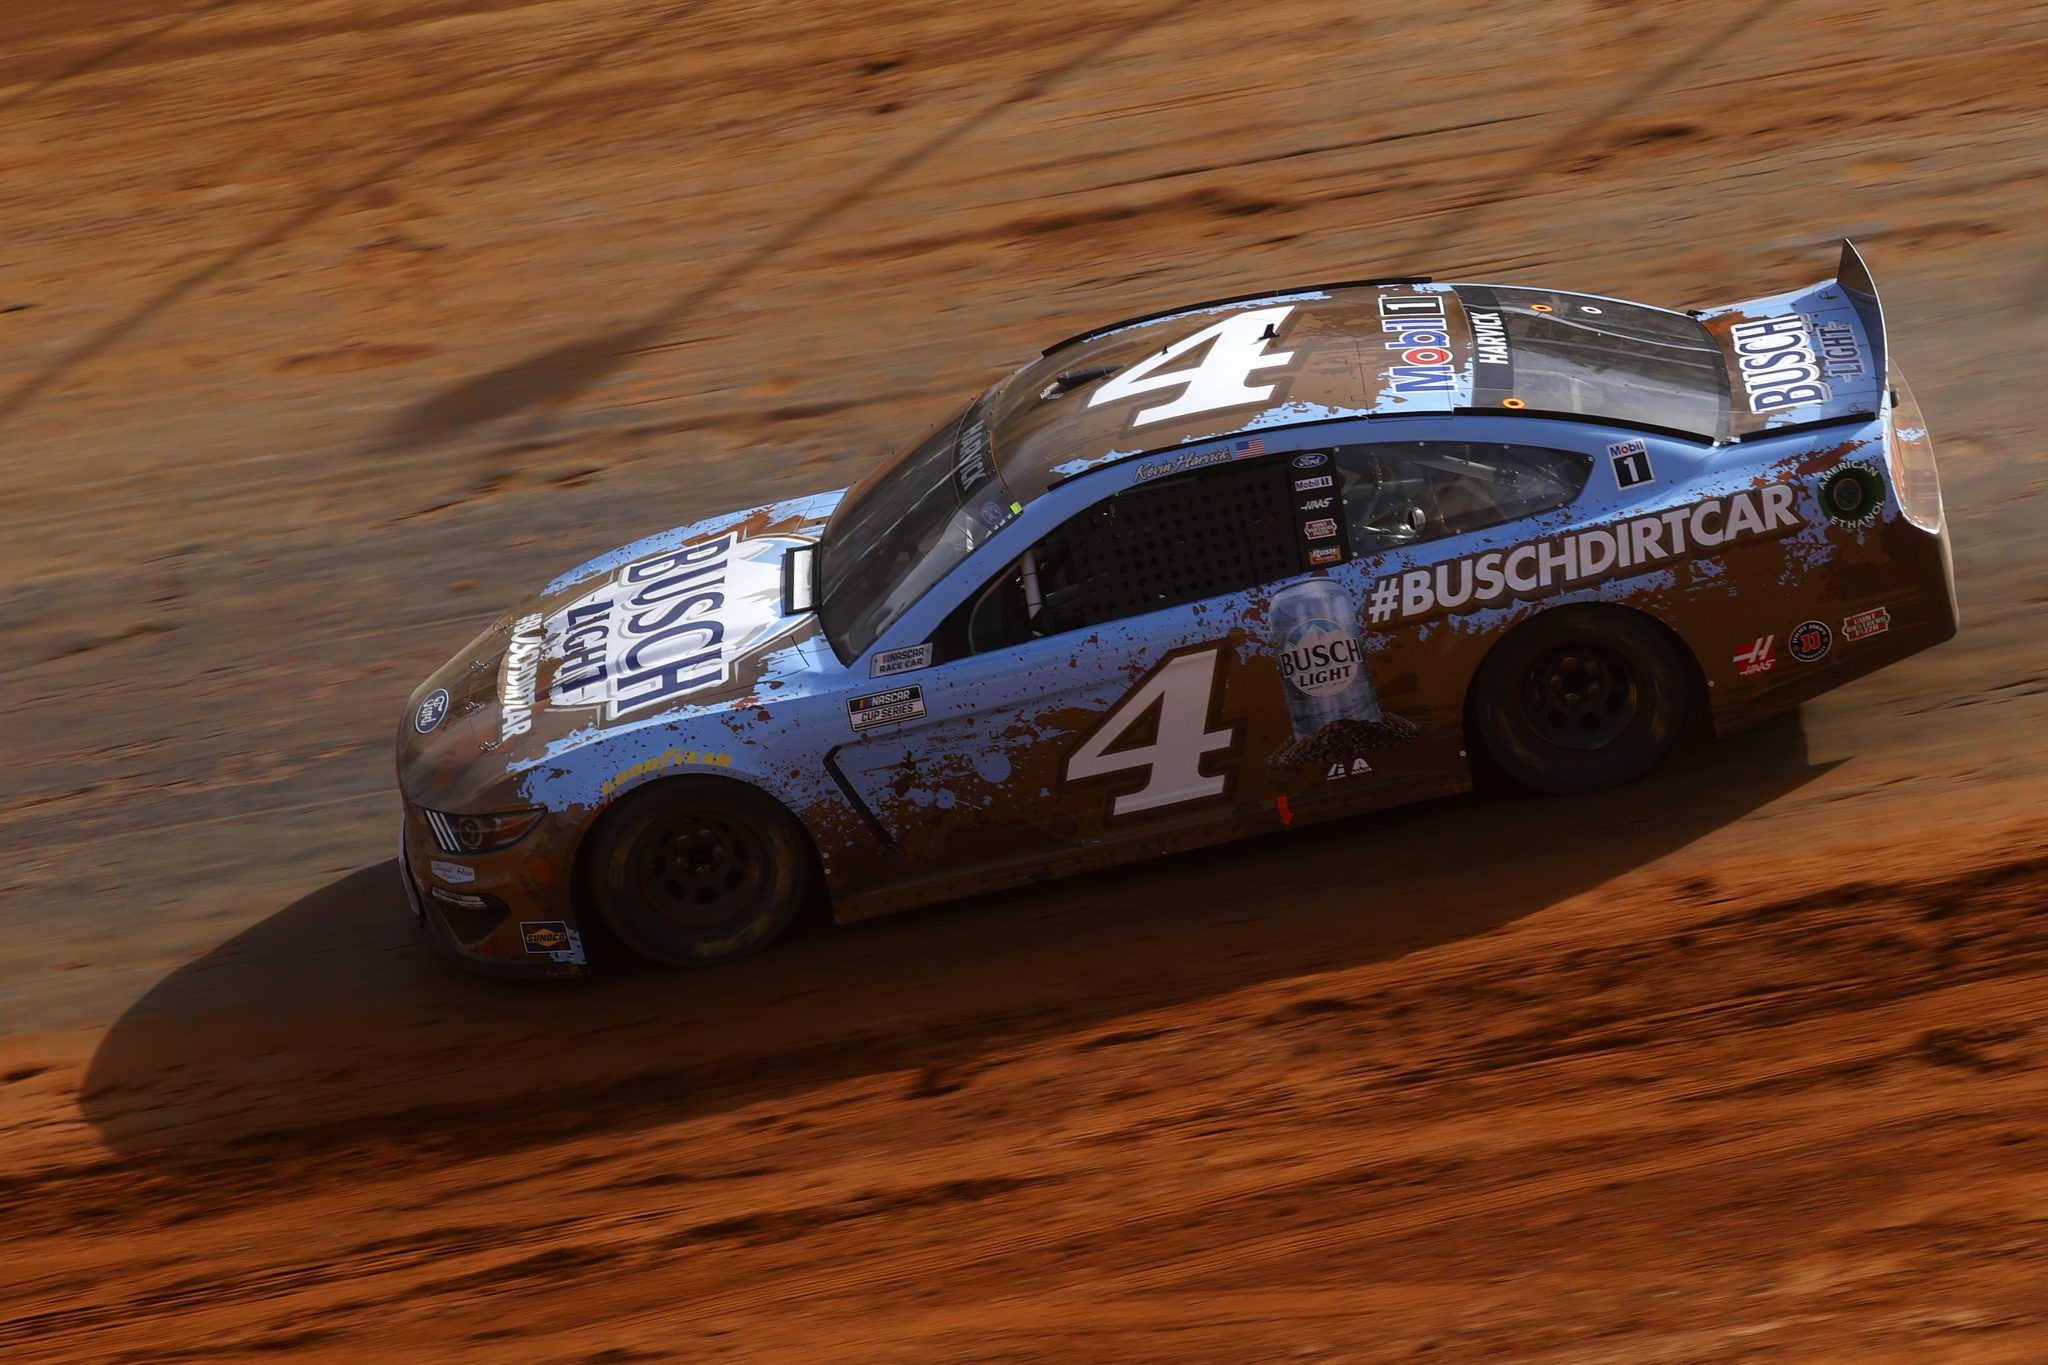 BRISTOL, TENNESSEE - MARCH 26: Kevin Harvick, driver of the #4 Busch Light Ford, drives during practice for the NASCAR Cup Series Food City Dirt Race at Bristol Motor Speedway on March 26, 2021 in Bristol, Tennessee. (Photo by Chris Graythen/Getty Images) | Getty Images